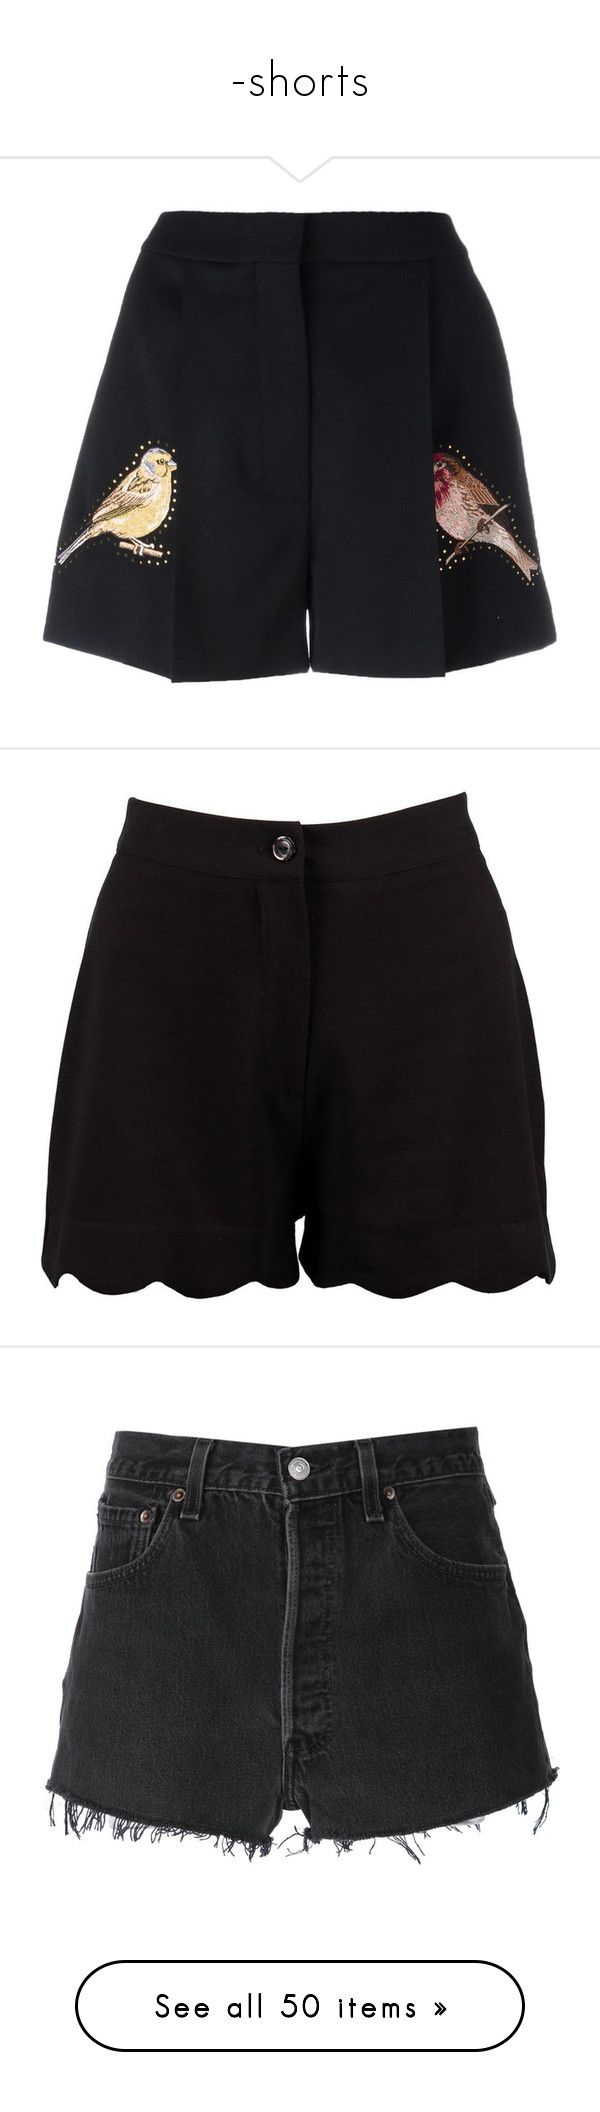 """""""-shorts"""" by flynty ❤ liked on Polyvore featuring shorts, bottoms, pants, short, black, high waisted studded shorts, short shorts, zipper shorts, high-rise shorts and pleated shorts"""